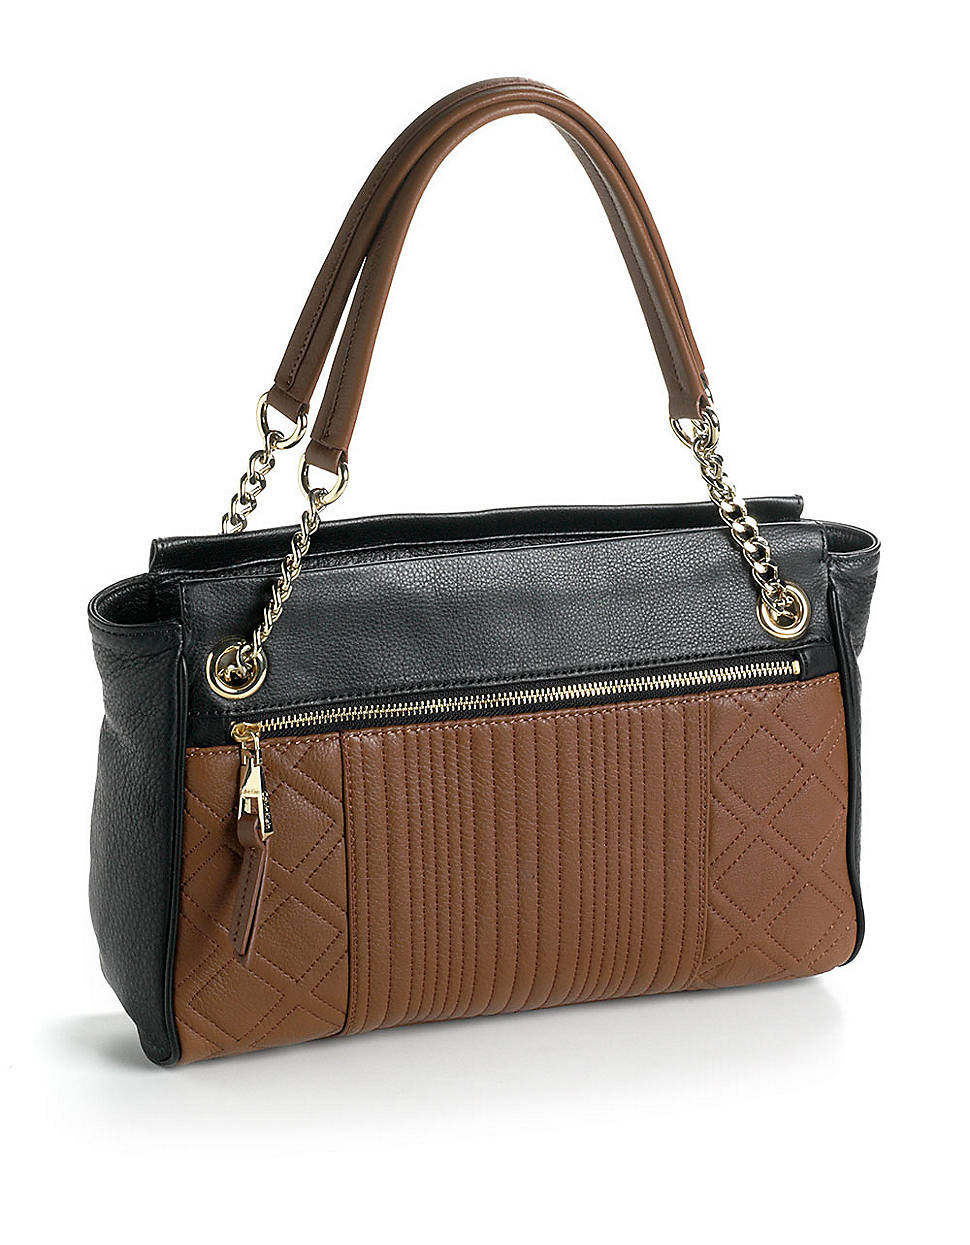 Calvin Klein Colorblock Leather Satchel Bag In Brown